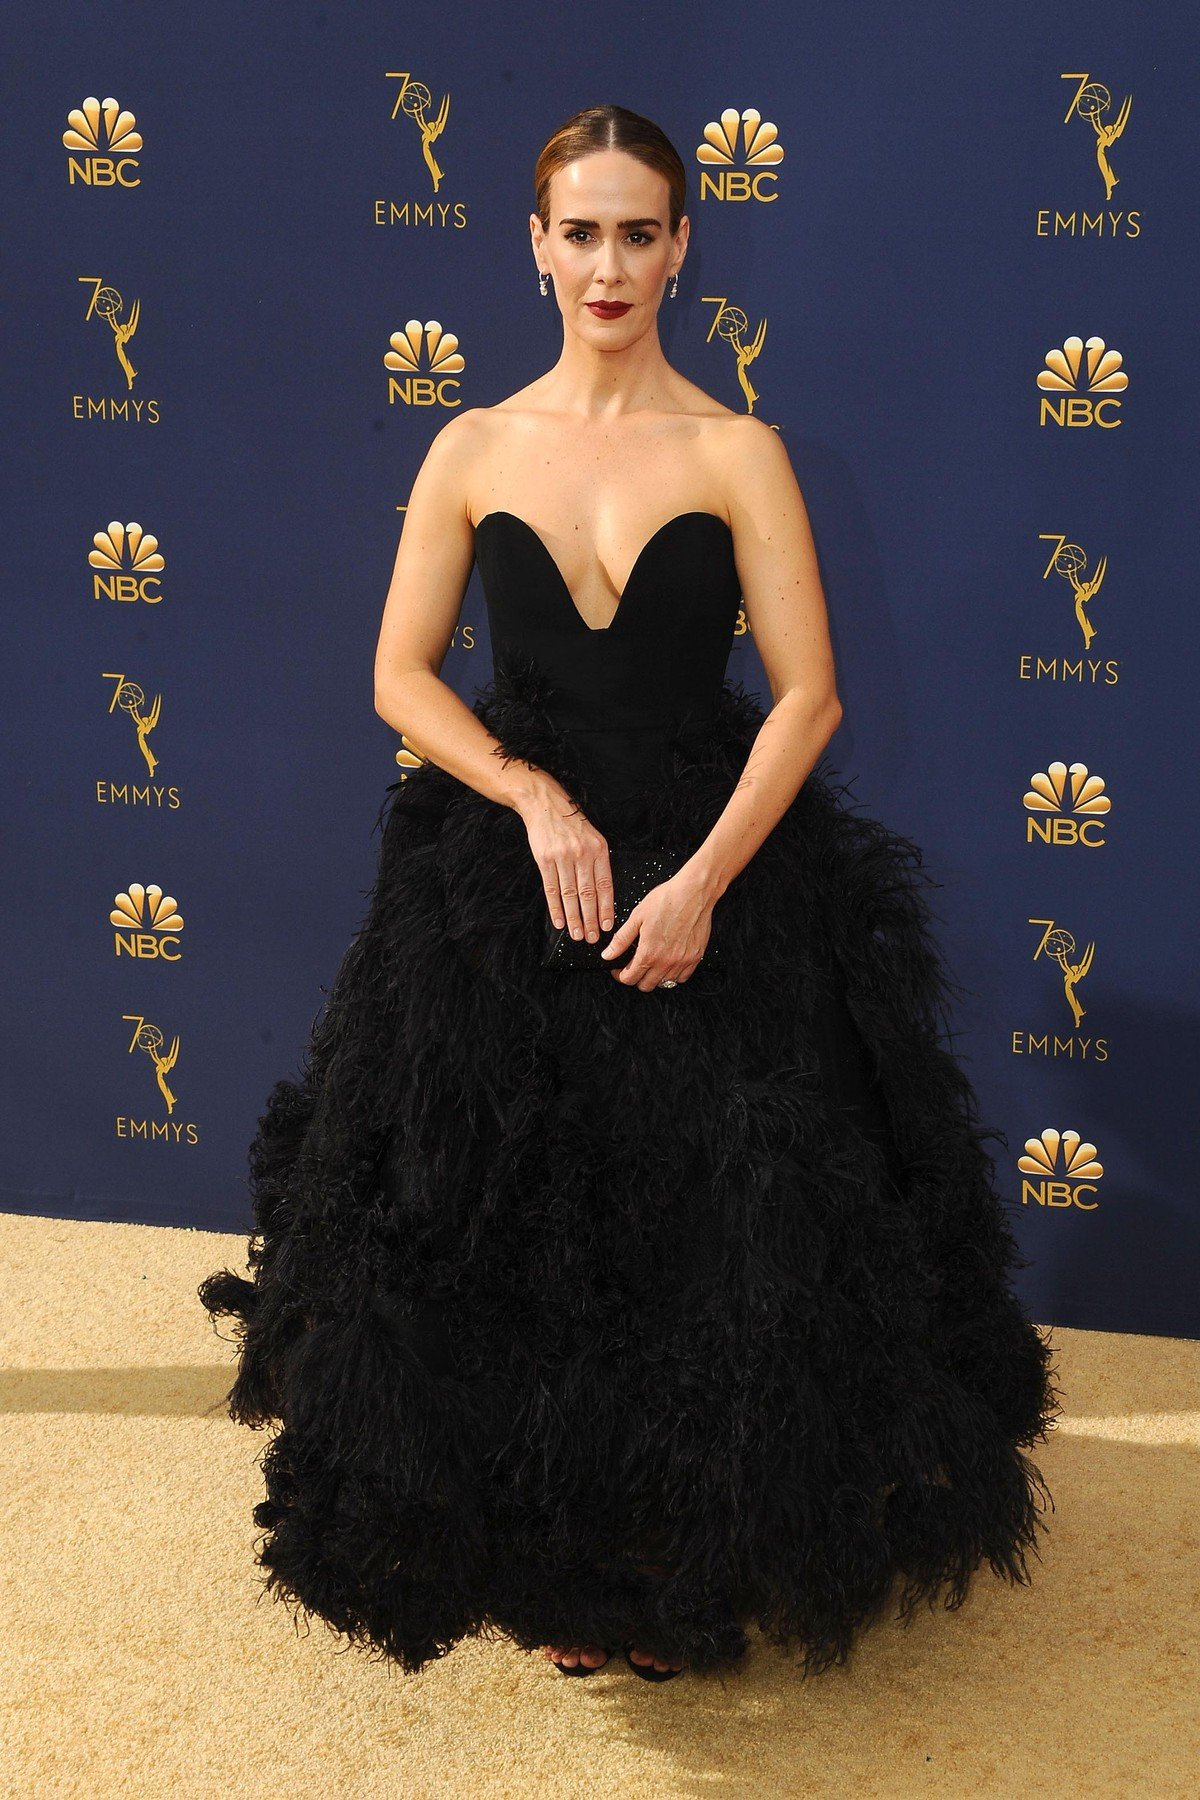 , Los Angeles, CA -20180917 - The 70th Primetime Emmy Awards Red Carpet, at Microsoft Theater  -PICTURED: Sarah Paulson -, Image: 387159239, License: Rights-managed, Restrictions: , Model Release: no, Credit line: Profimedia, INSTAR Images